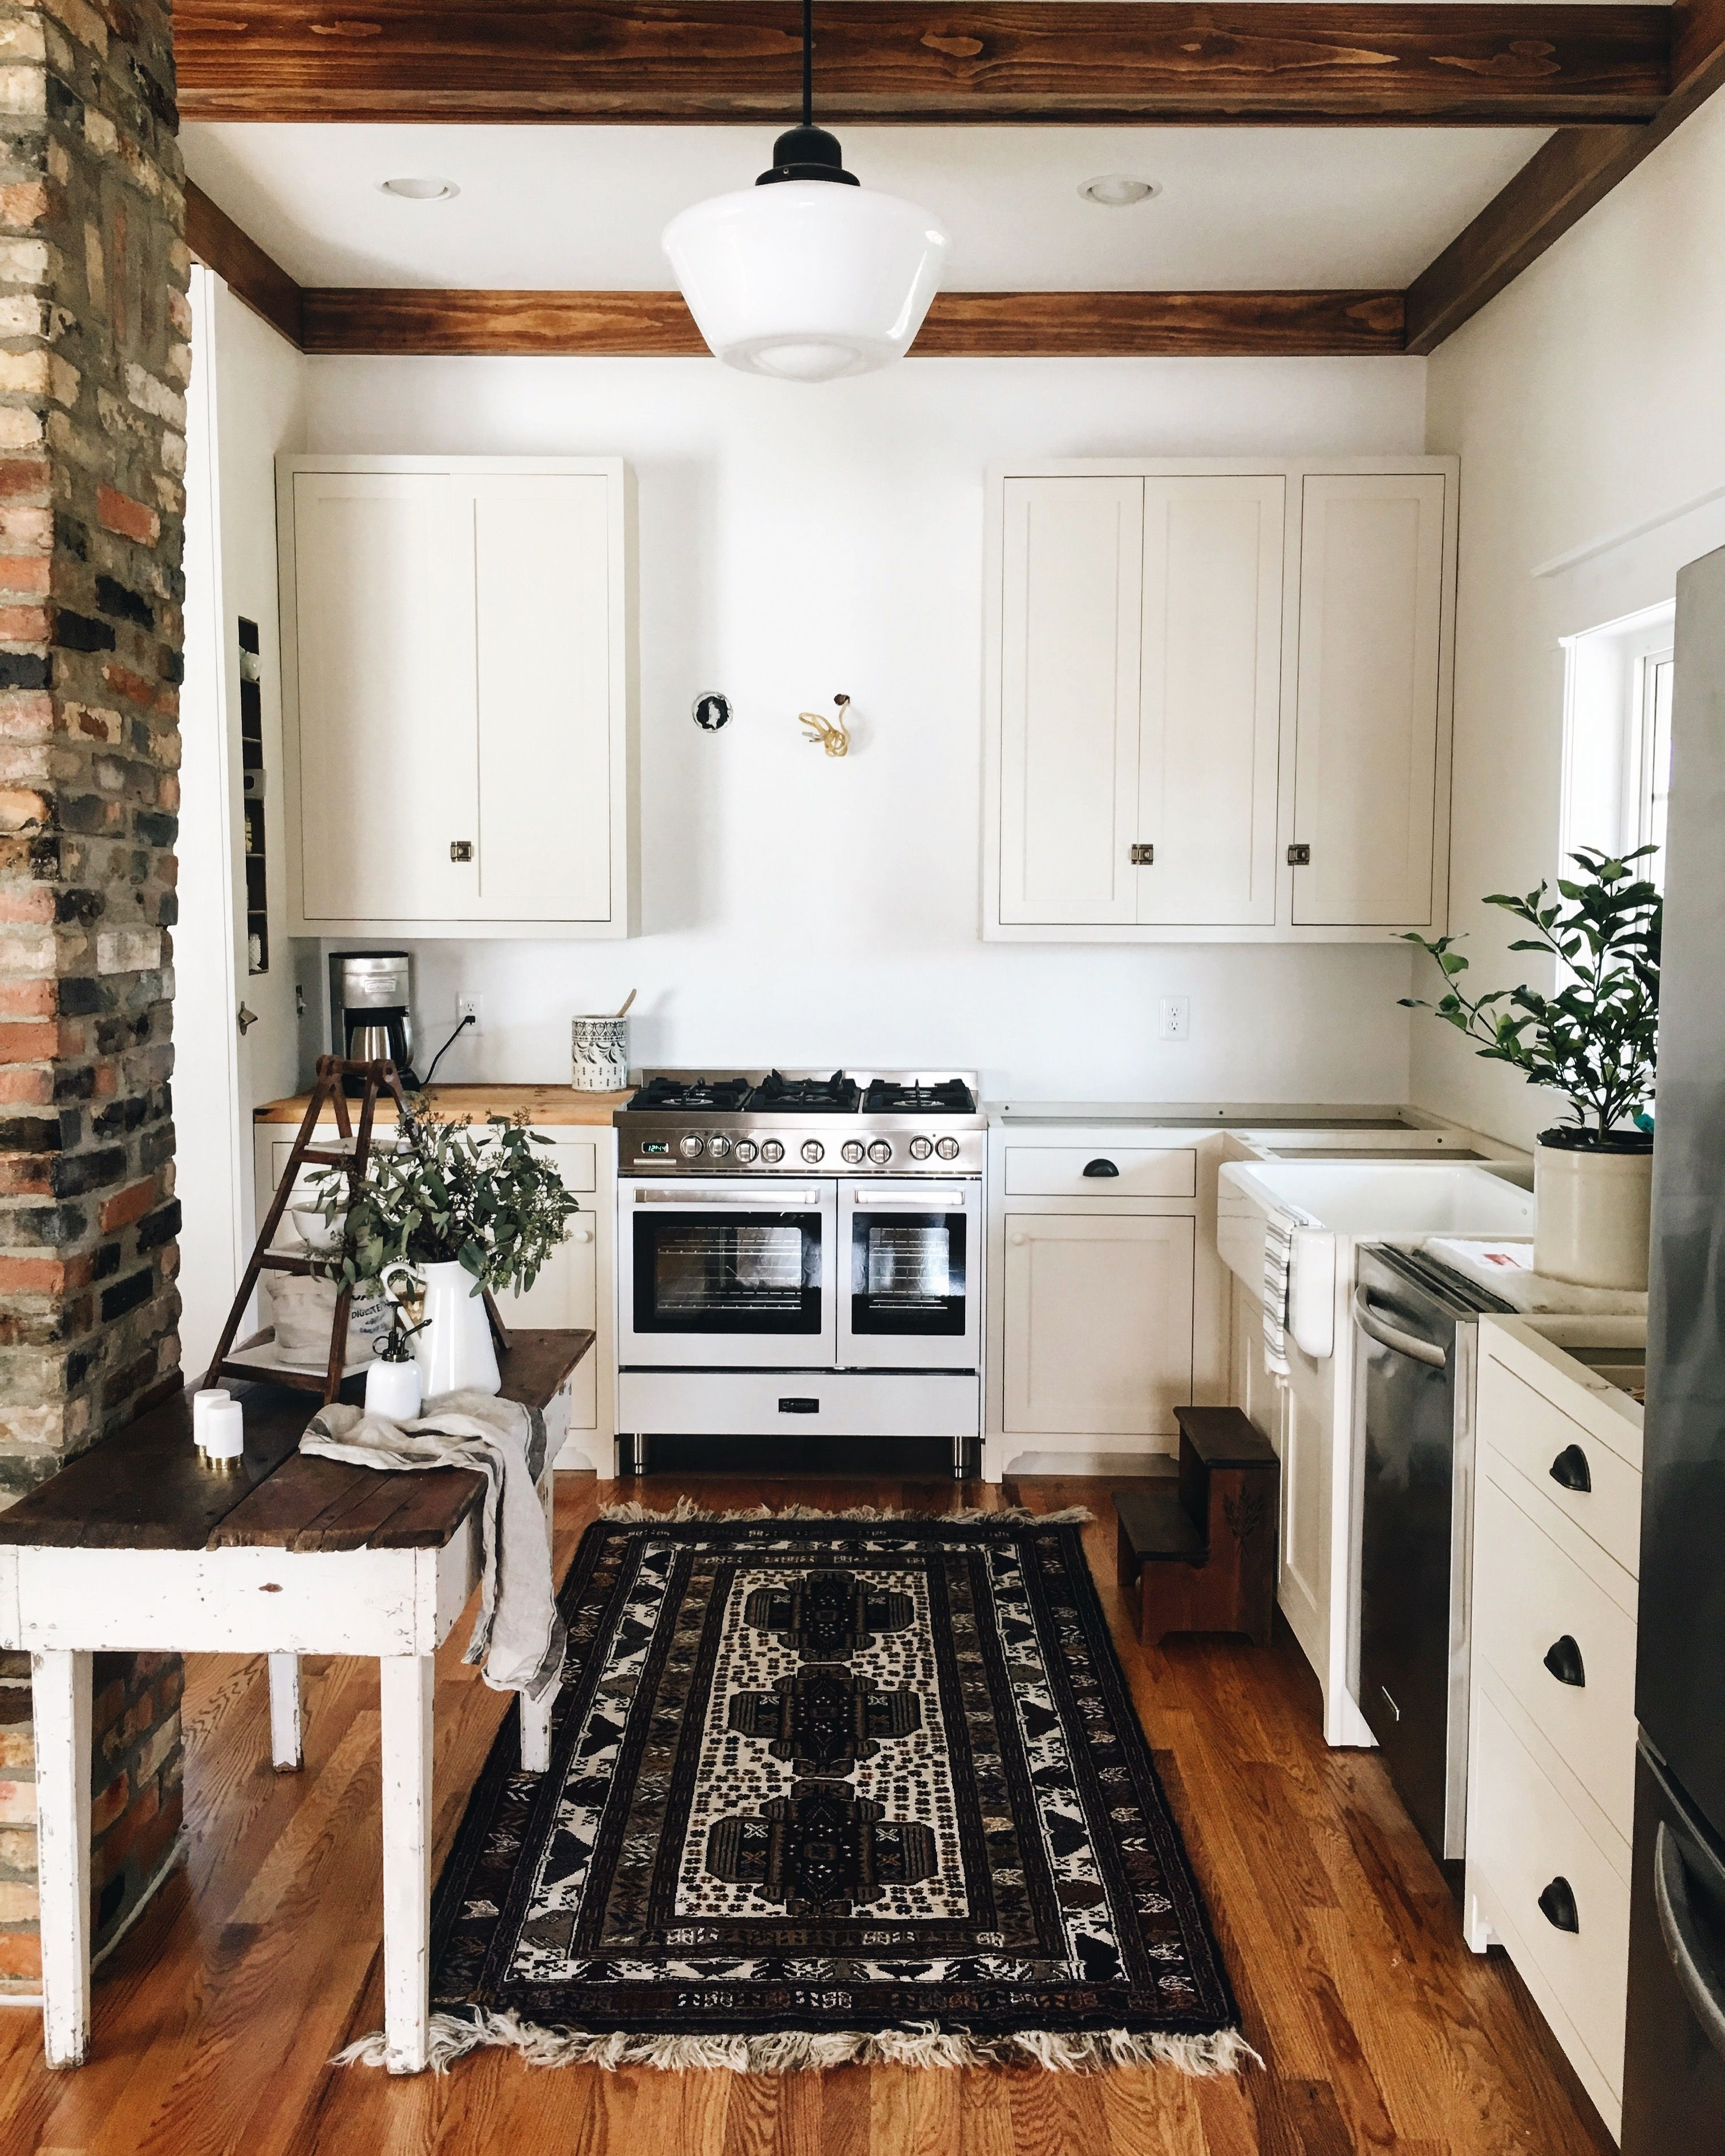 black and white kitchen rug stainless steel knobs for cabinets warm with wood flooring beams vintage in